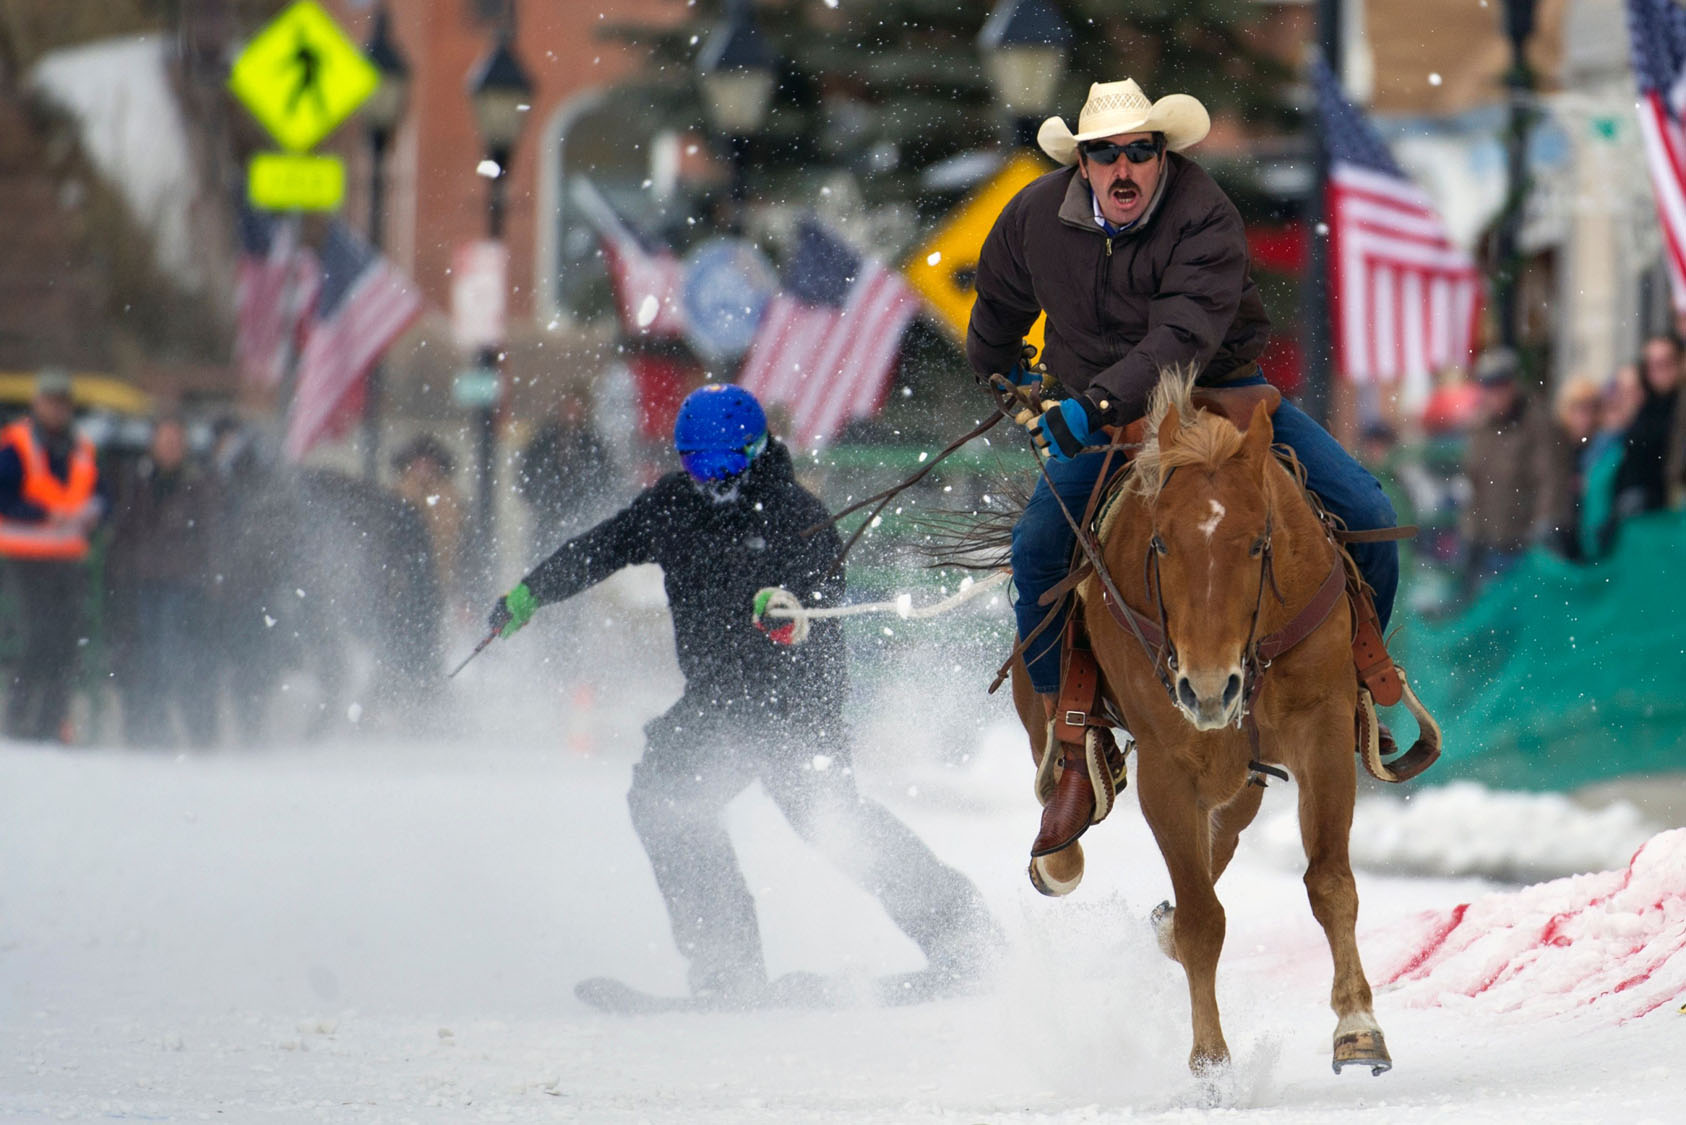 68th annual Leadville Ski Joring competition in Colorado